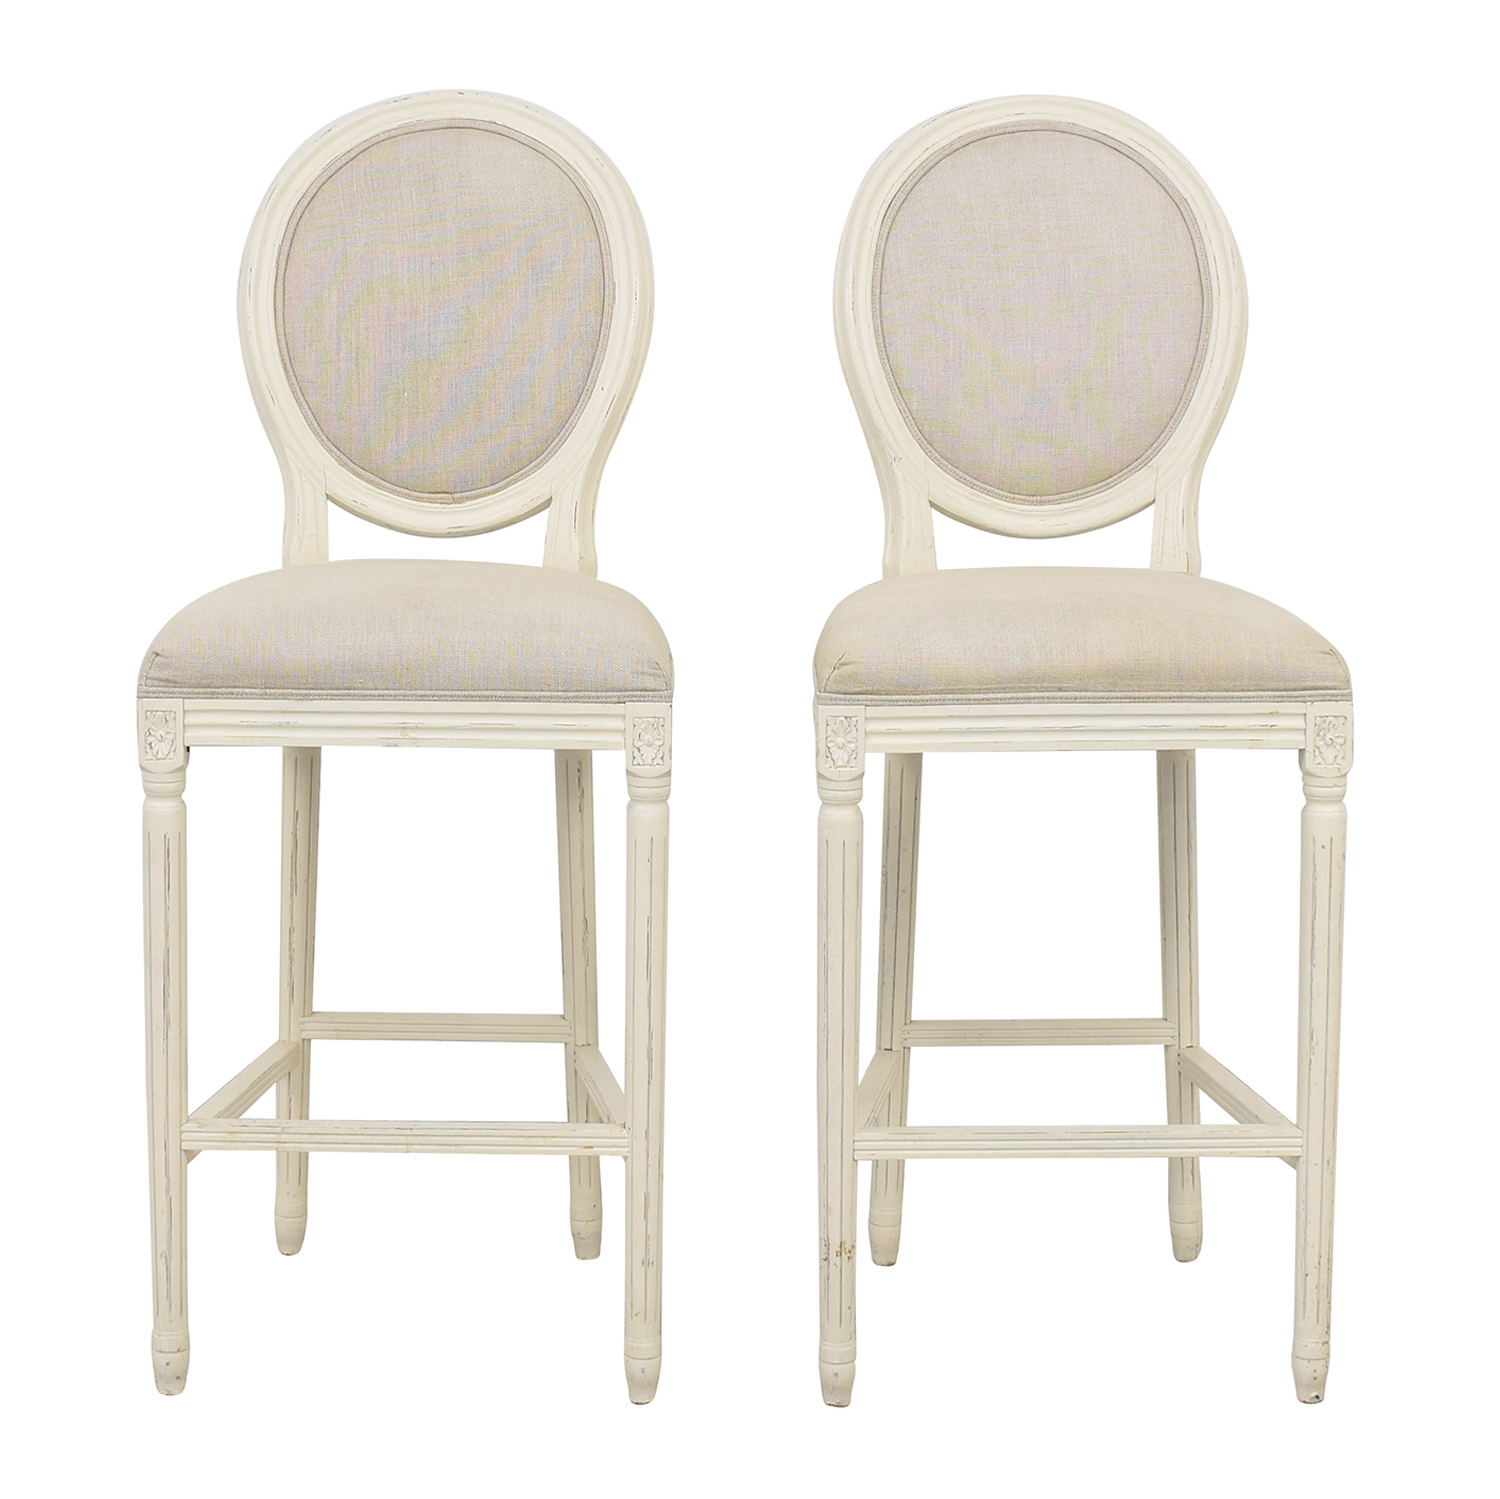 Restoration Hardware Restoration Hardware Vintage French Round Fabric Stools coupon